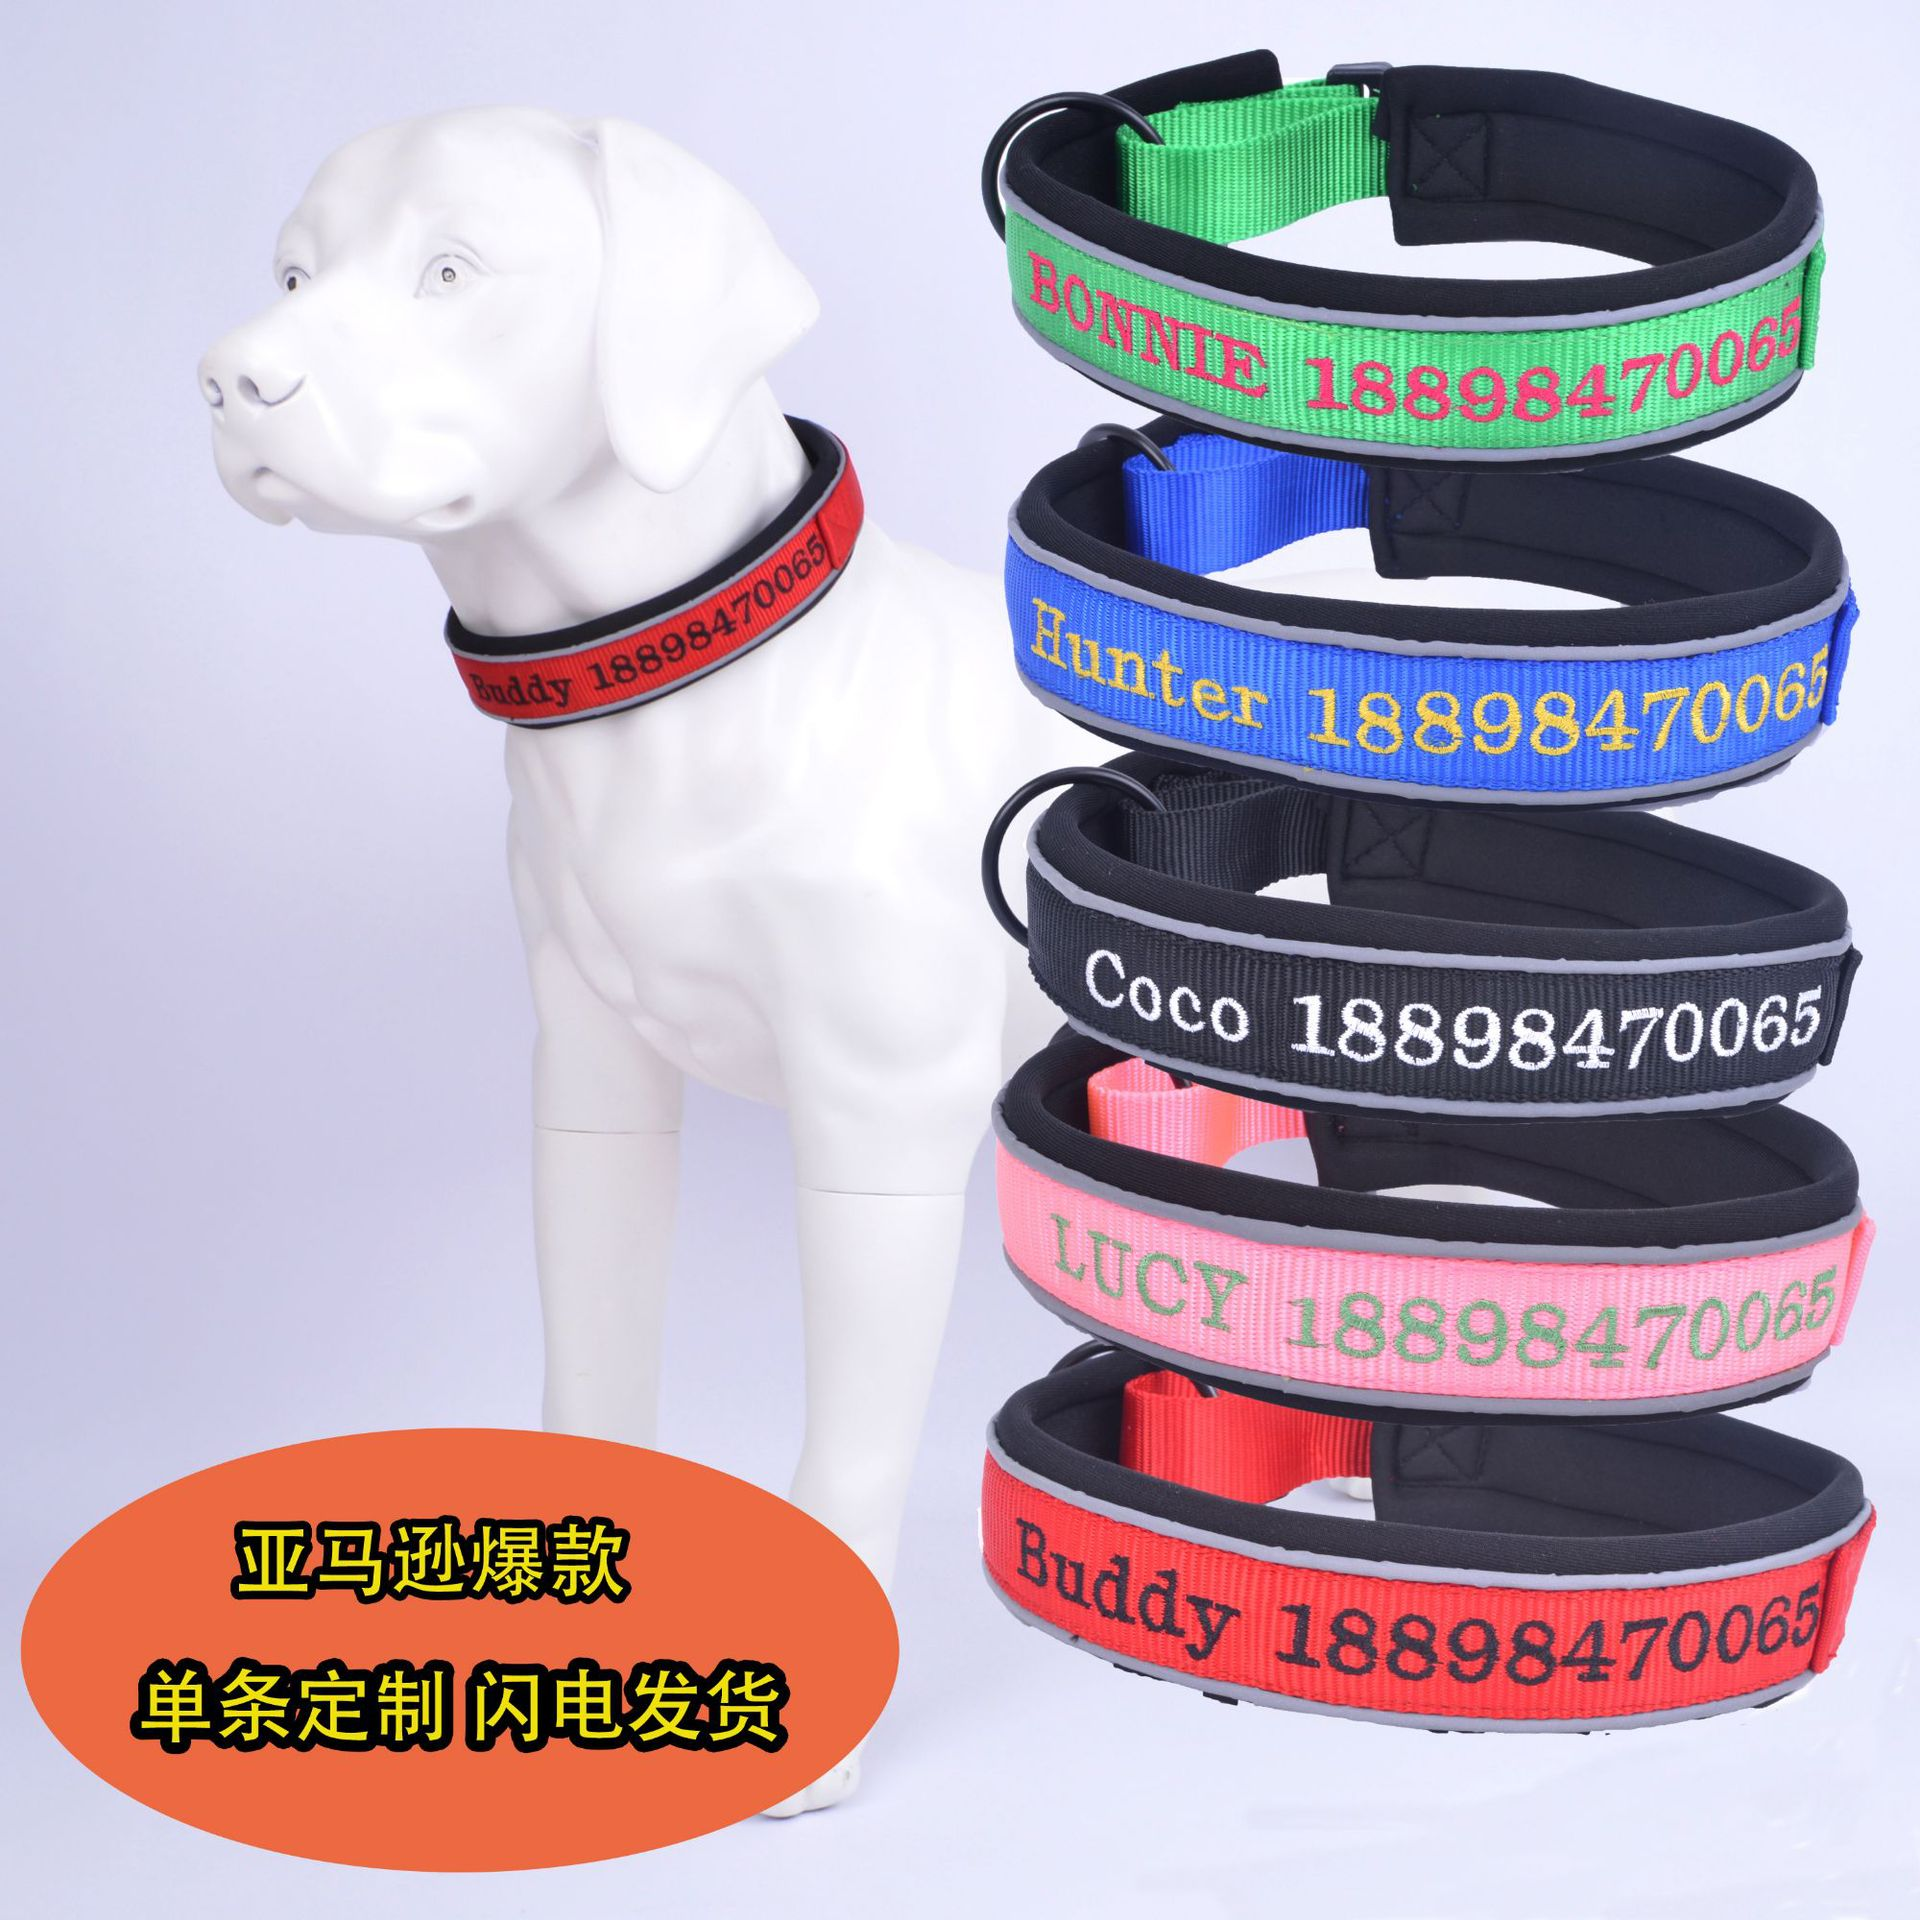 Pet Supplies Neoprene Embroidery Neck Ring Nylon Reflective Strips Neck Ring Customizable Phone Dog Name New Products